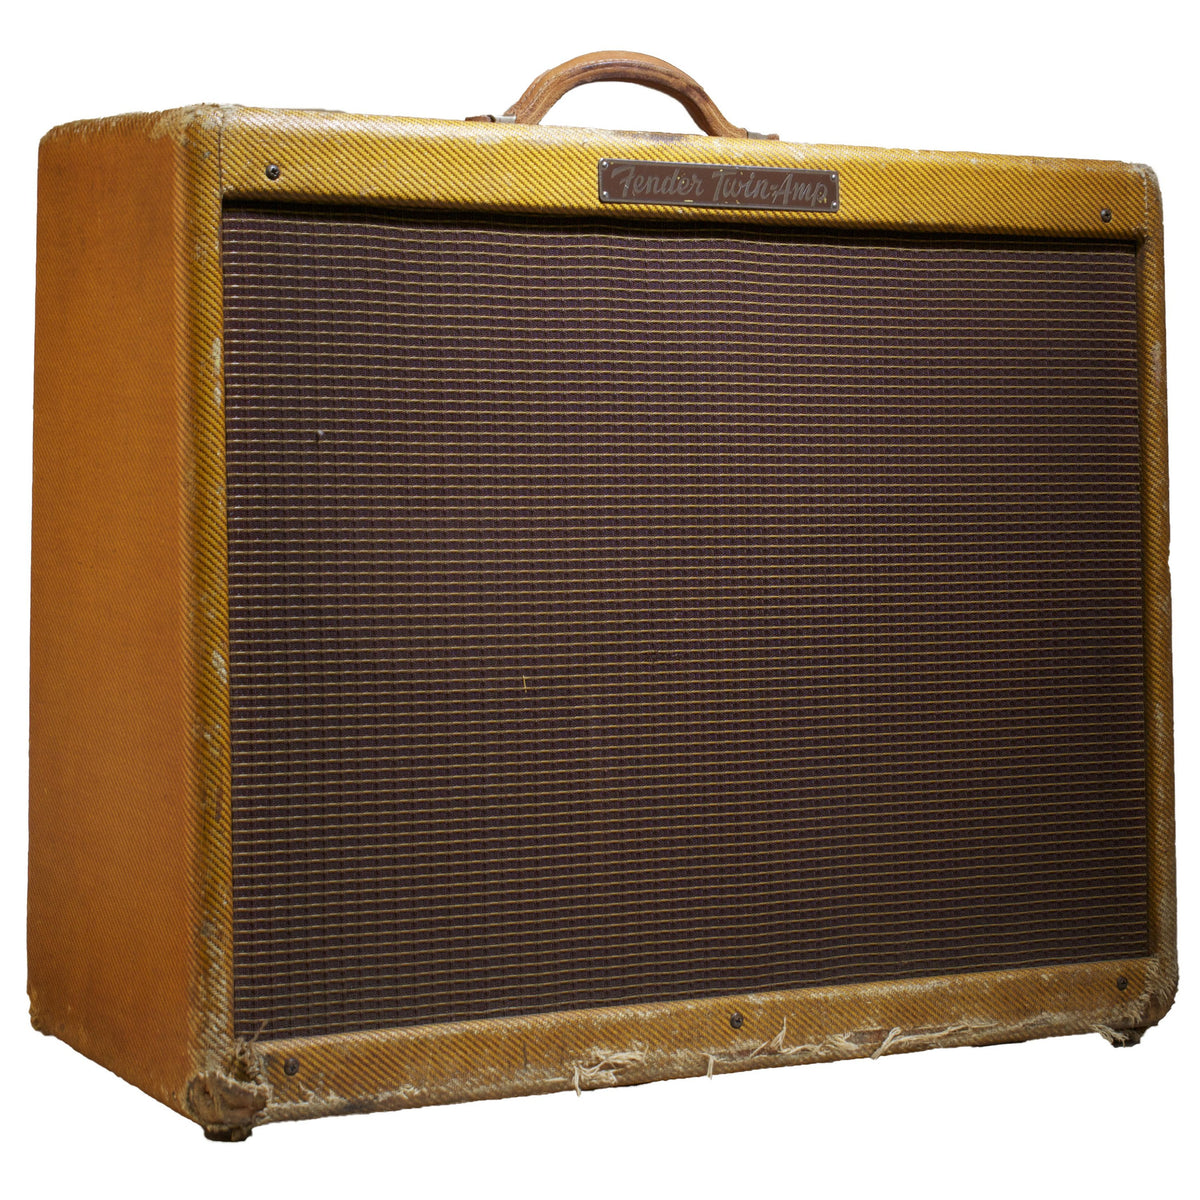 1956 Fender Twin Amplifier - Garrett Park Guitars  - 1